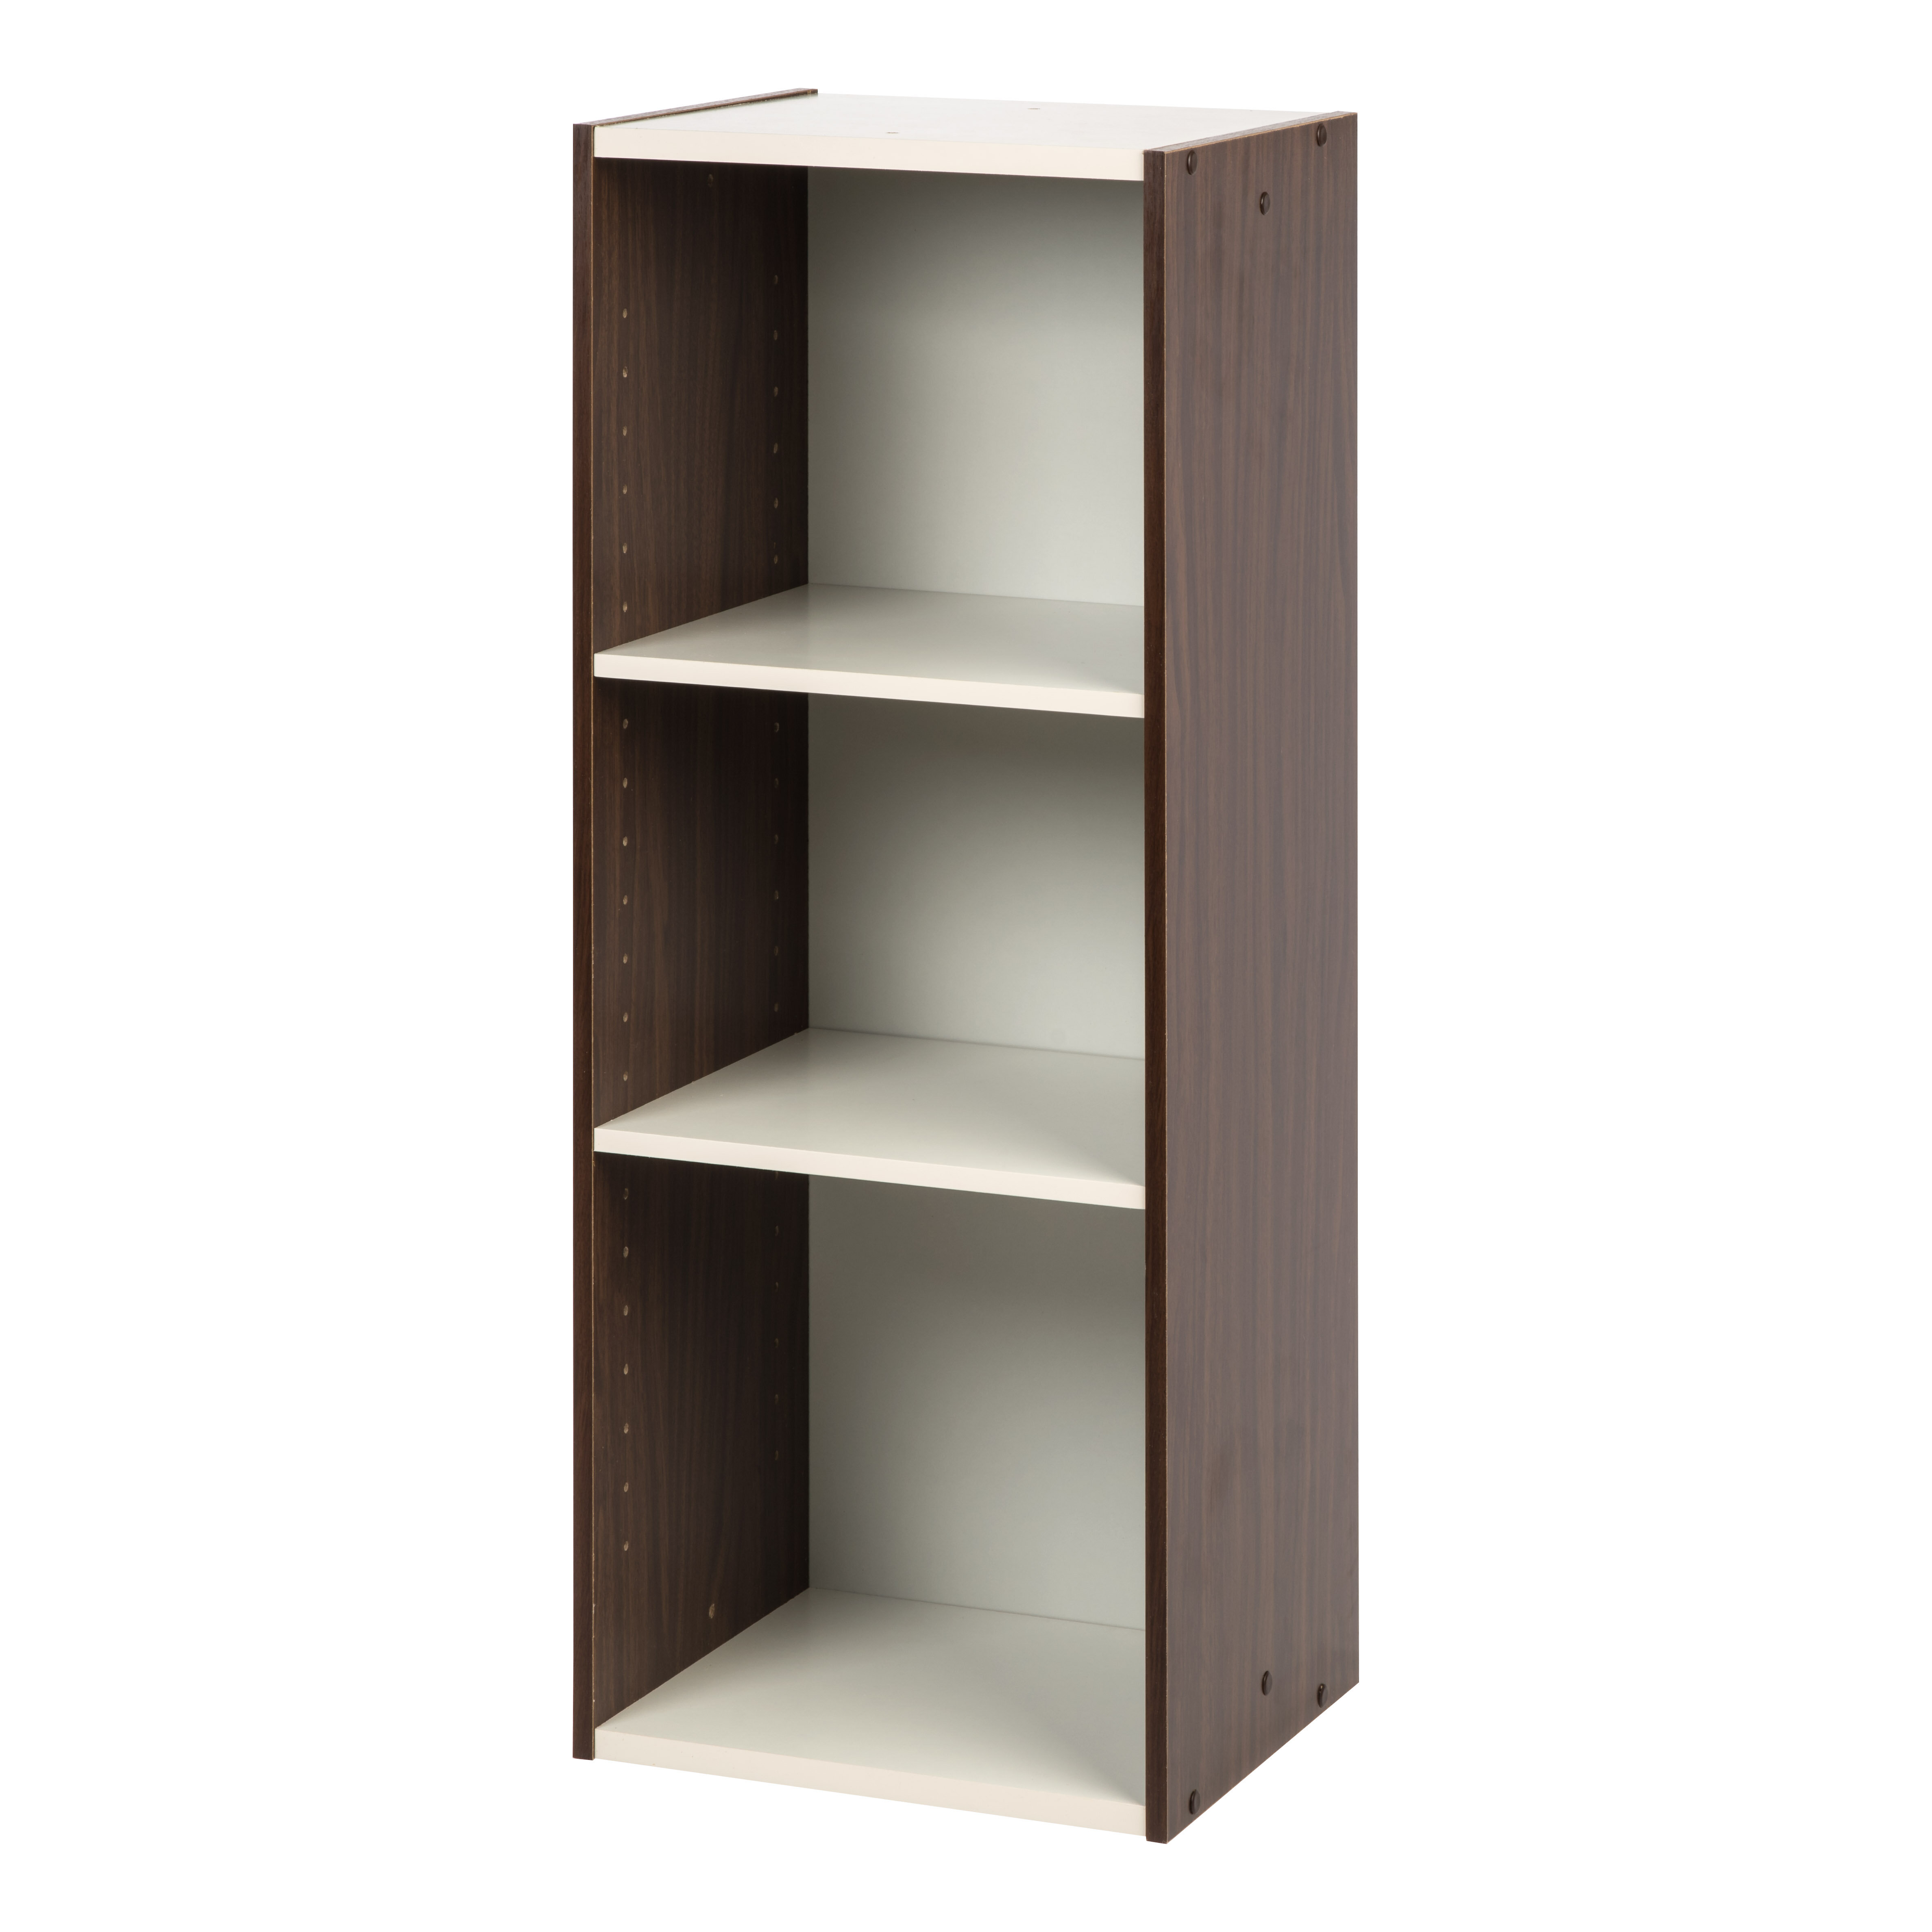 ikea for cm natural brown products has fixed solid shelf wood bookcase art stability storage light a gb hemnes bookcases feel high furniture en